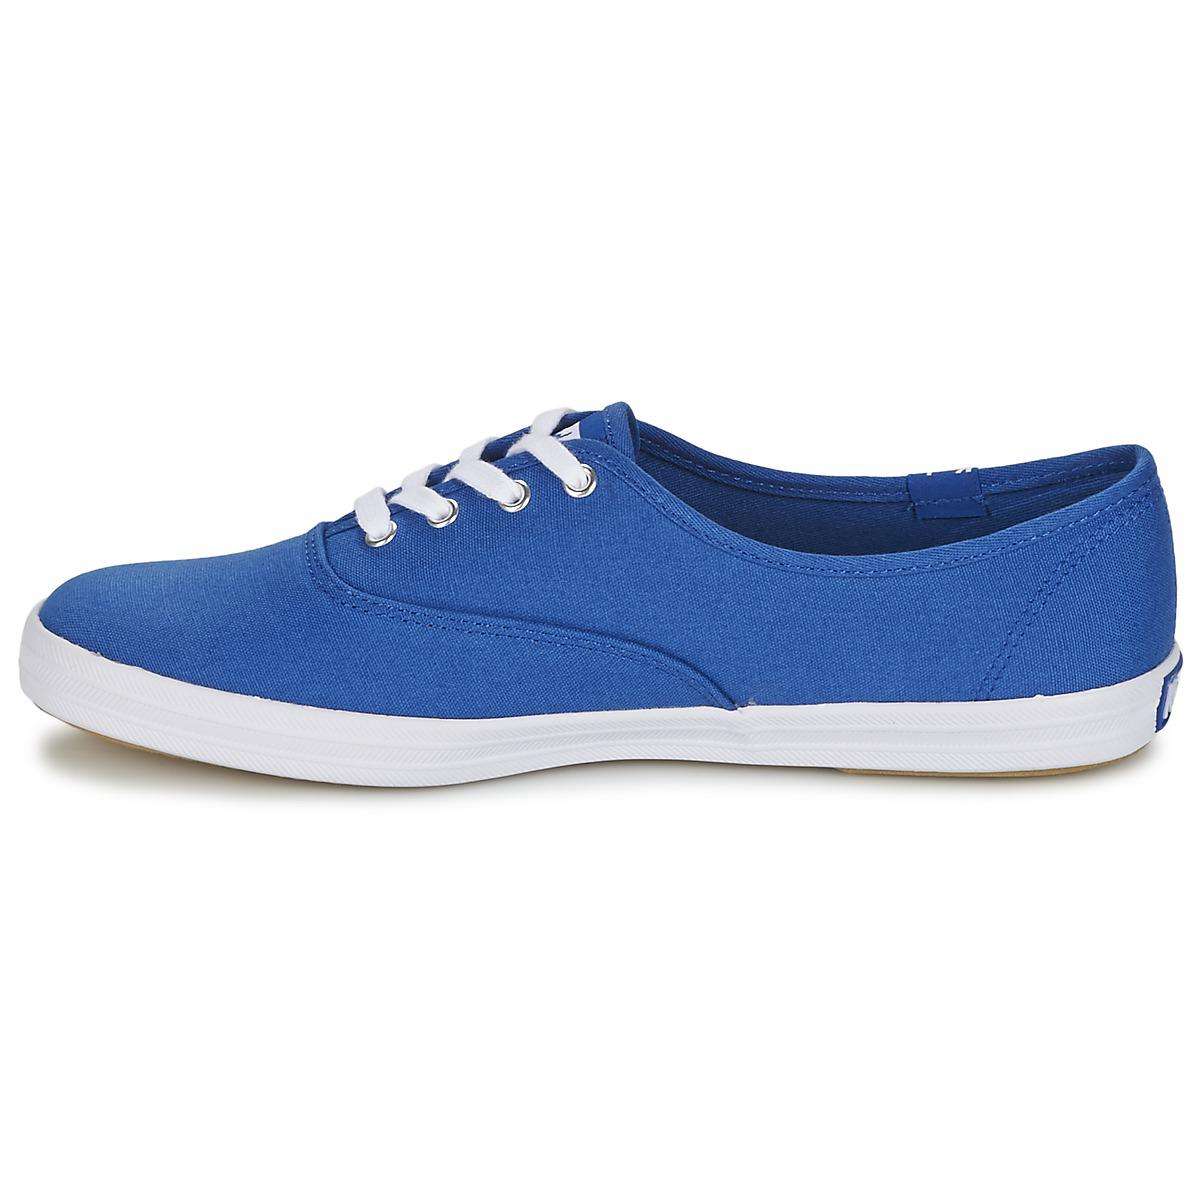 2594c16f3 Keds Champion Seasonal Solids Women s Shoes (trainers) In Blue in Blue -  Lyst